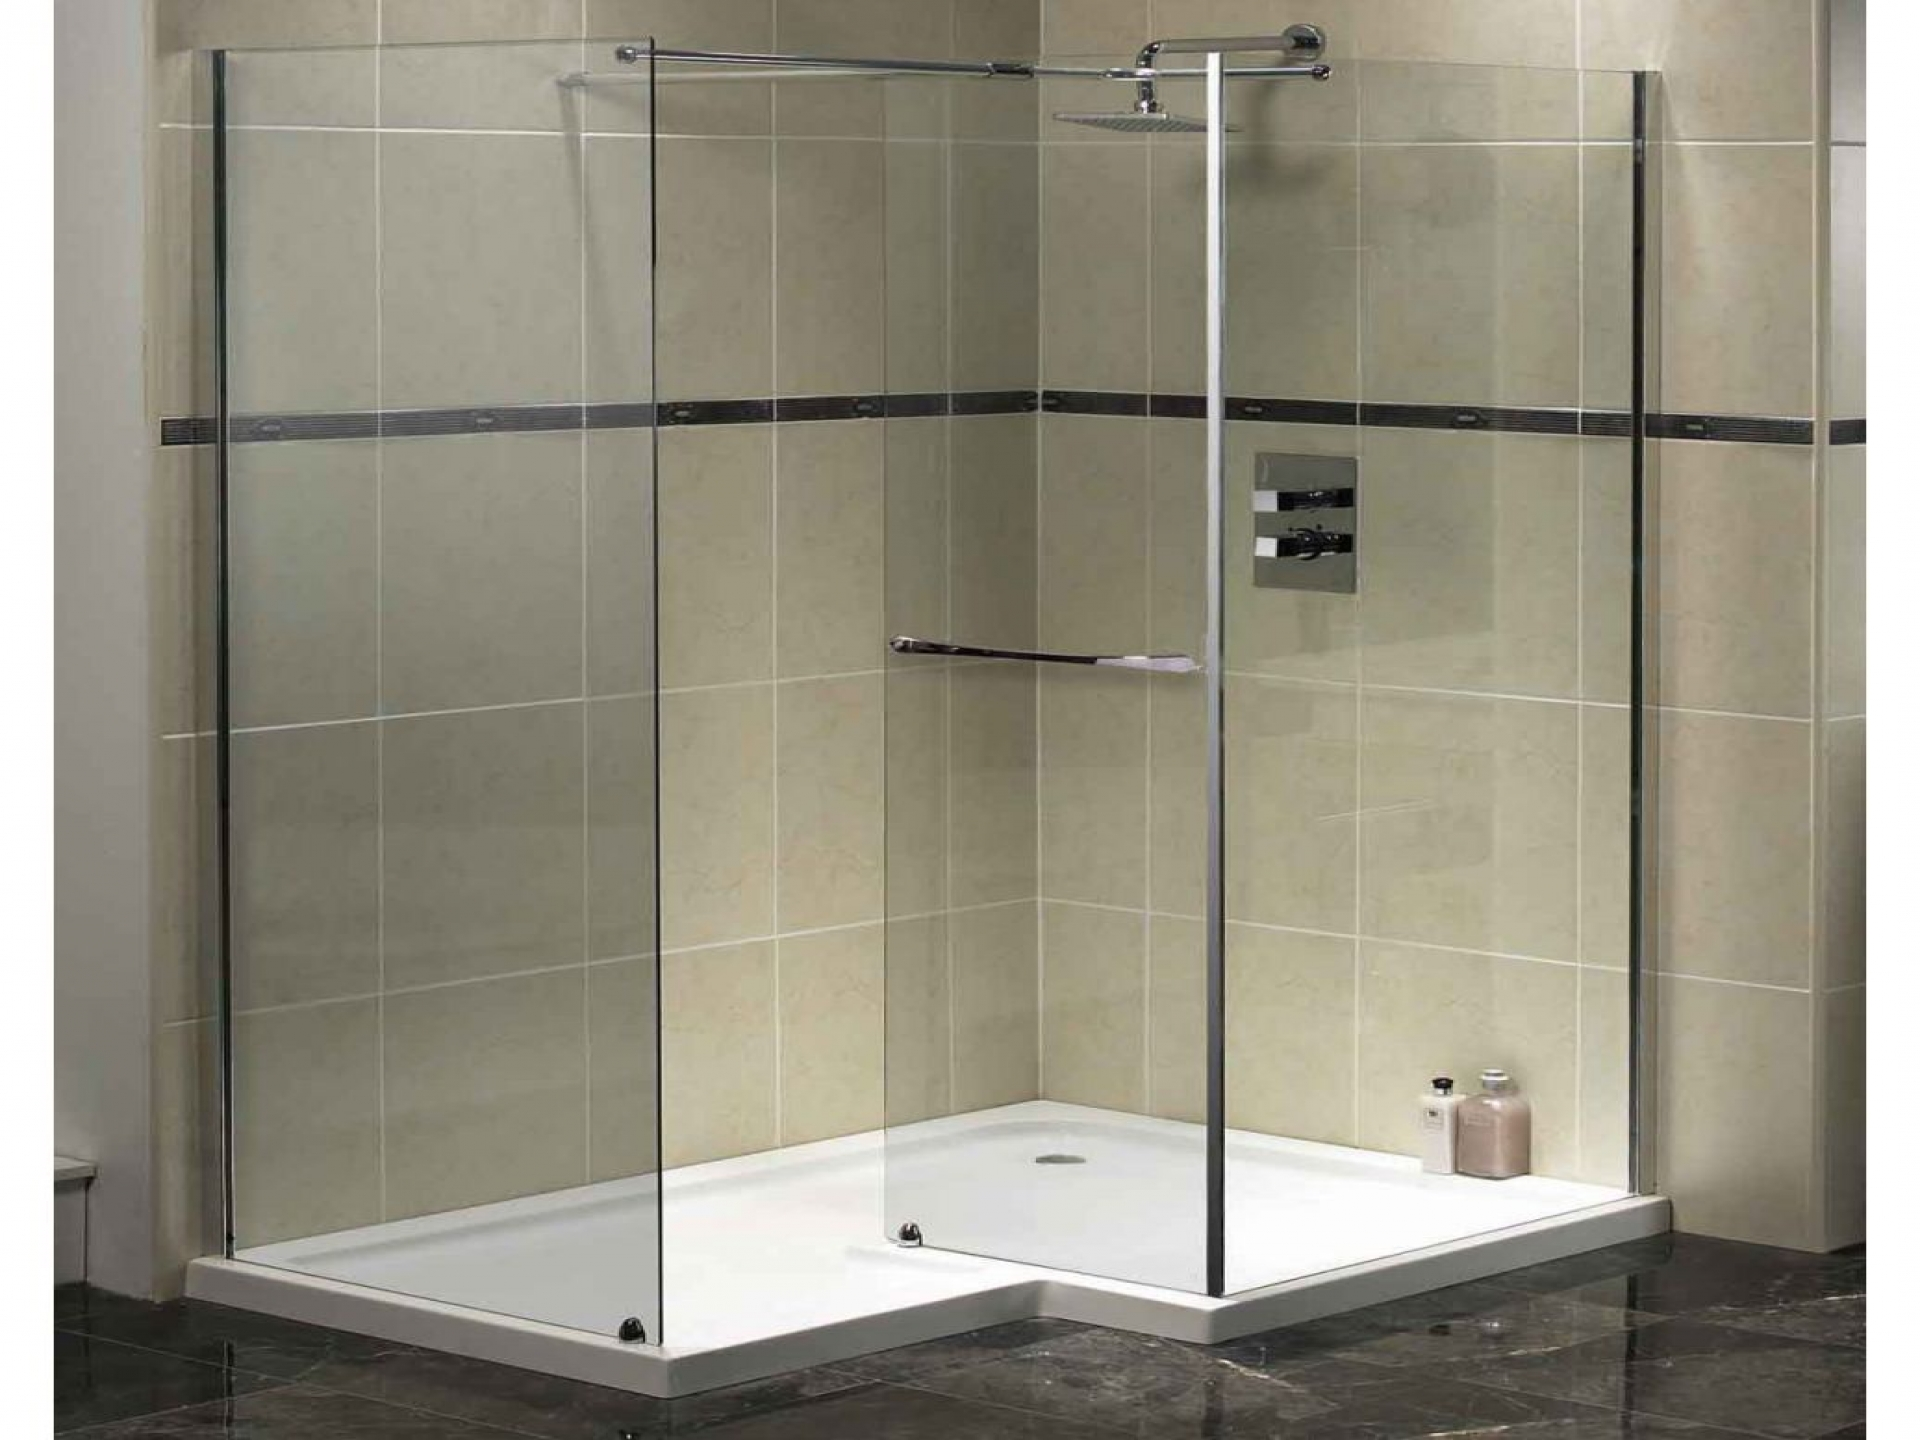 1920x1440-bathroom-fancy-glass-shower-tube-with-elegant-wall-mount-shower-granite-wall-ceramics-tile-astonishing-italian-bathroom-interior-design